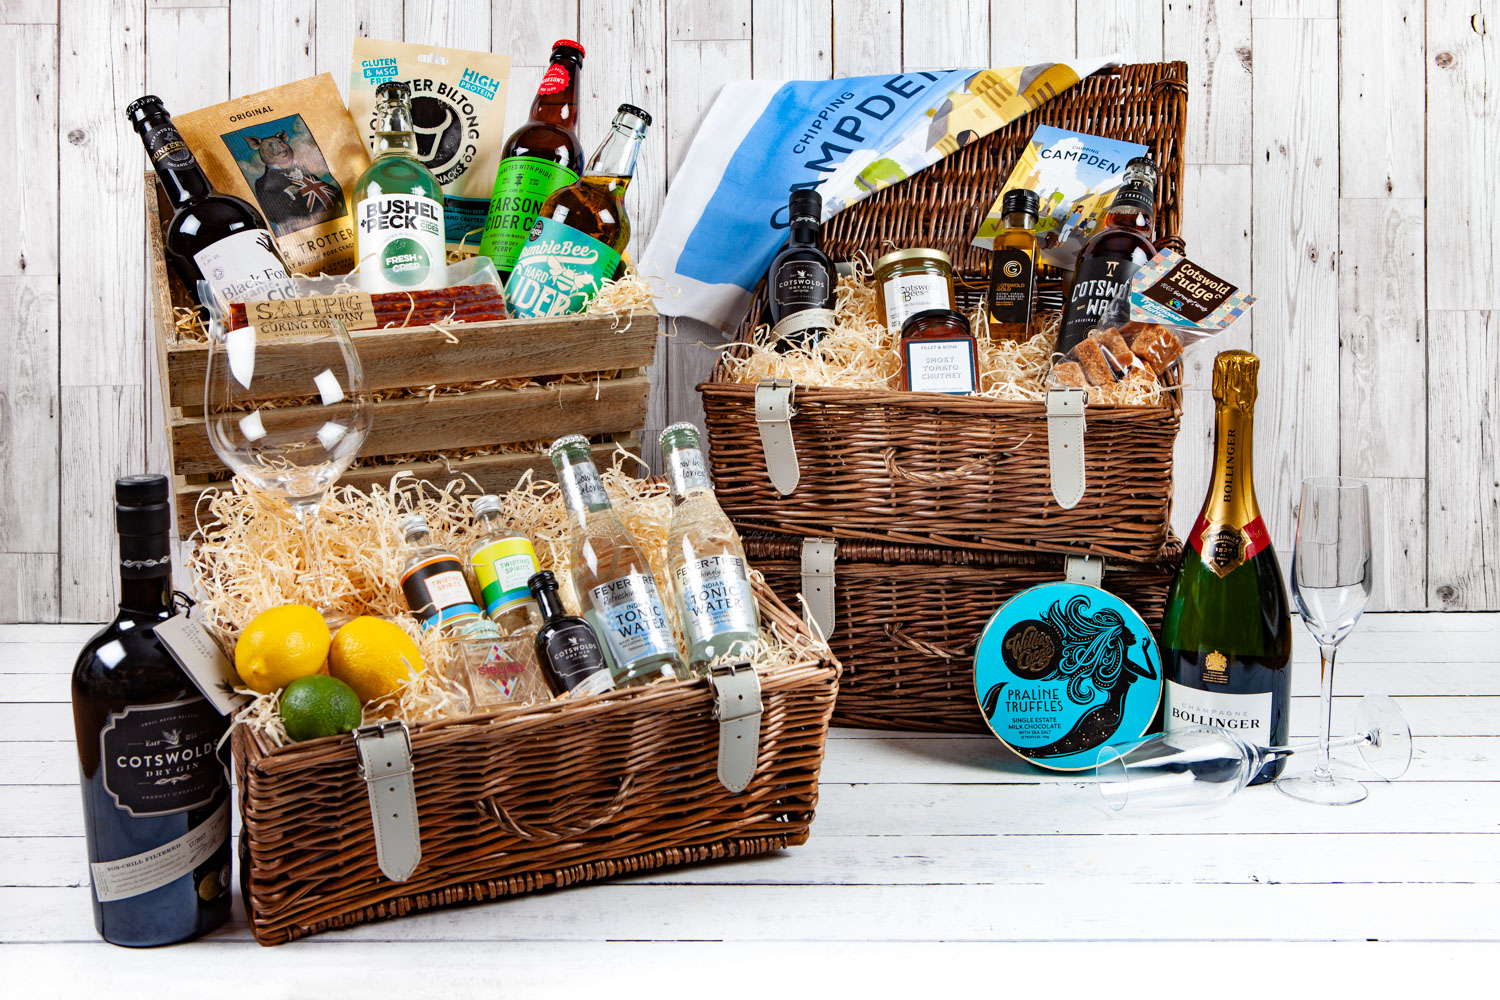 Cotswold Hampers, Cotwold Food & Drink Hampers, UK Delivery, Ideal Luxury Gifts, Wicker Hampers, Perfect Gifts, Cotswold Gifts